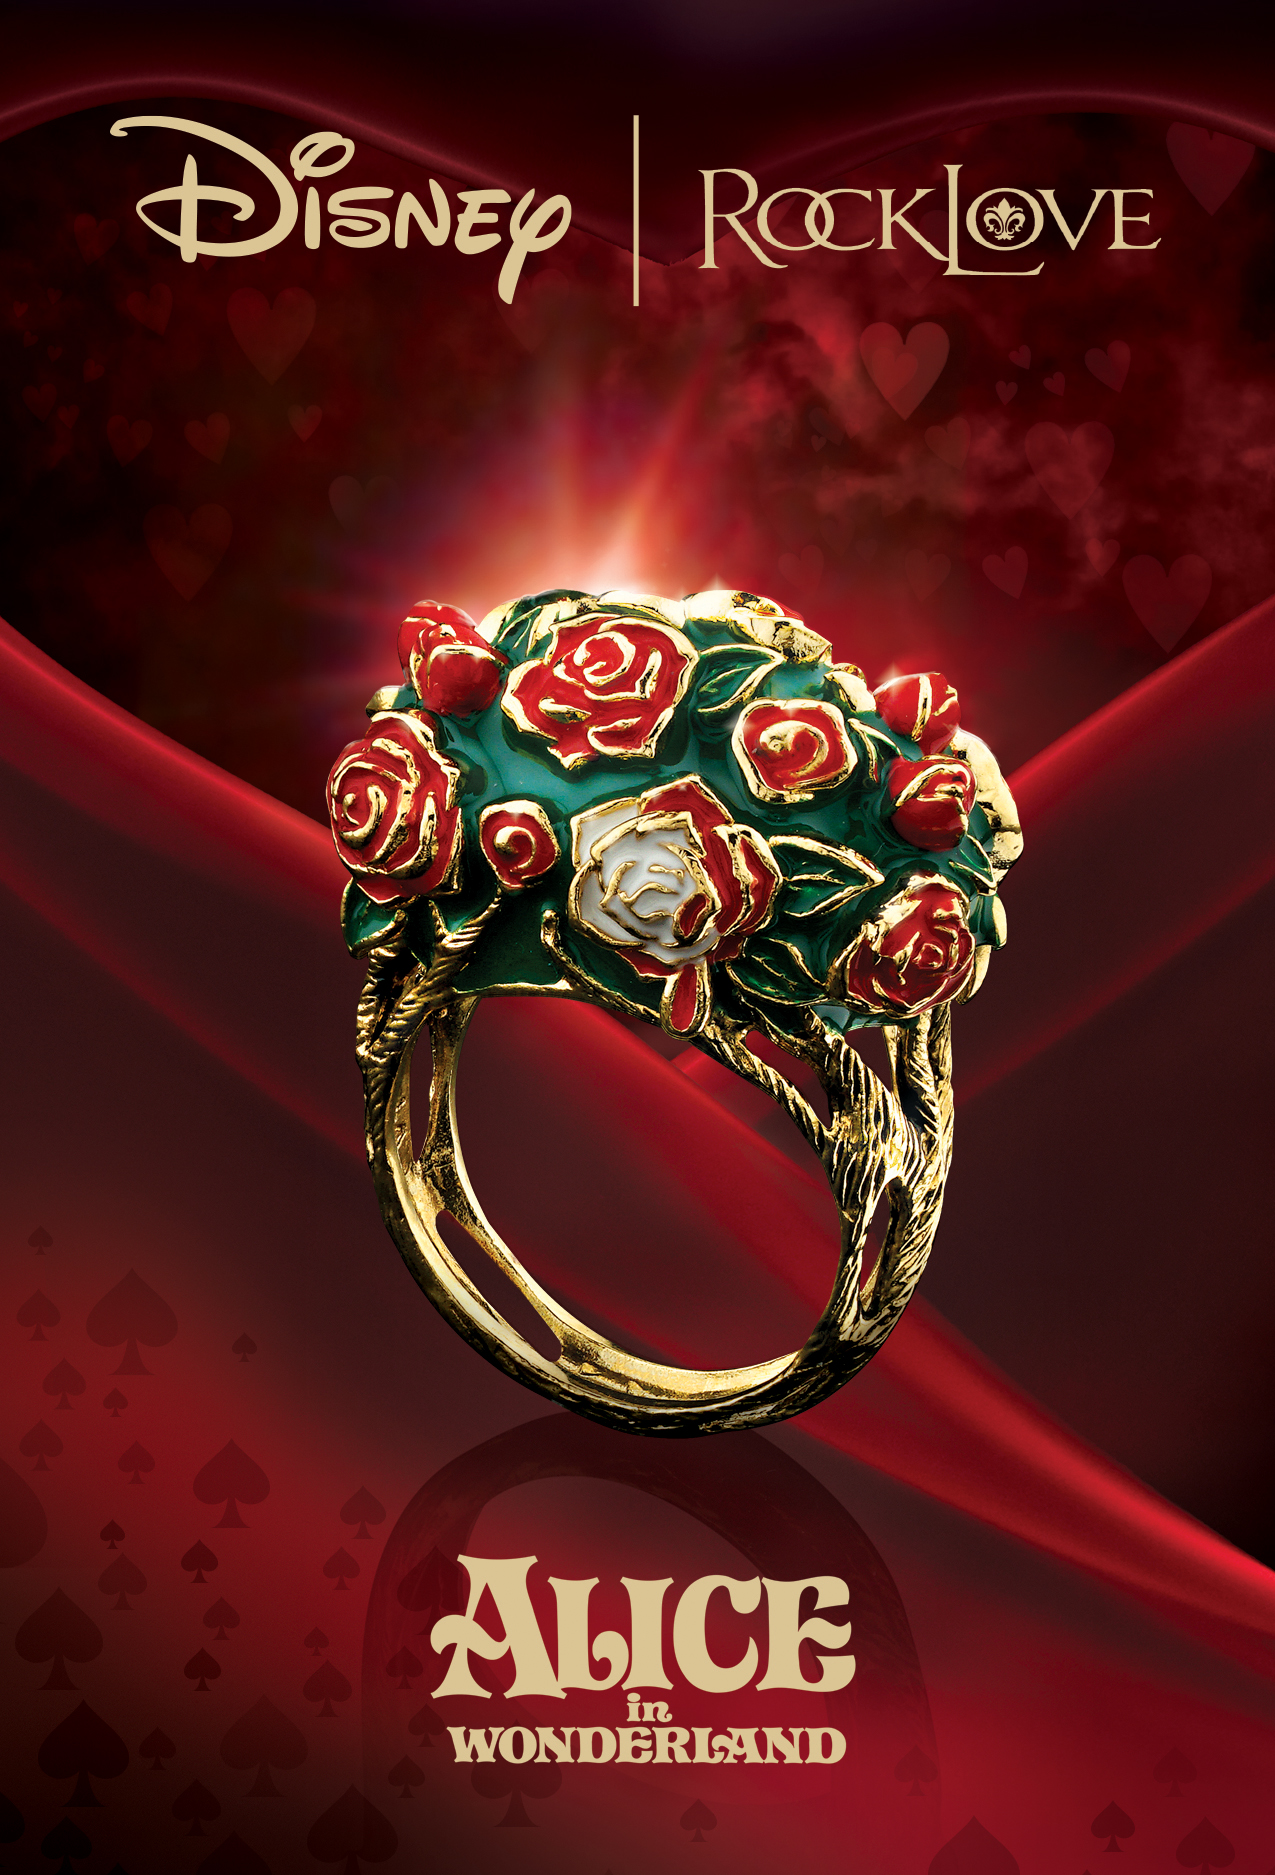 disney, alice in wonderland, beautiful, jewelry, ring, jewelry ad, red, print ad, creative jewelry ad